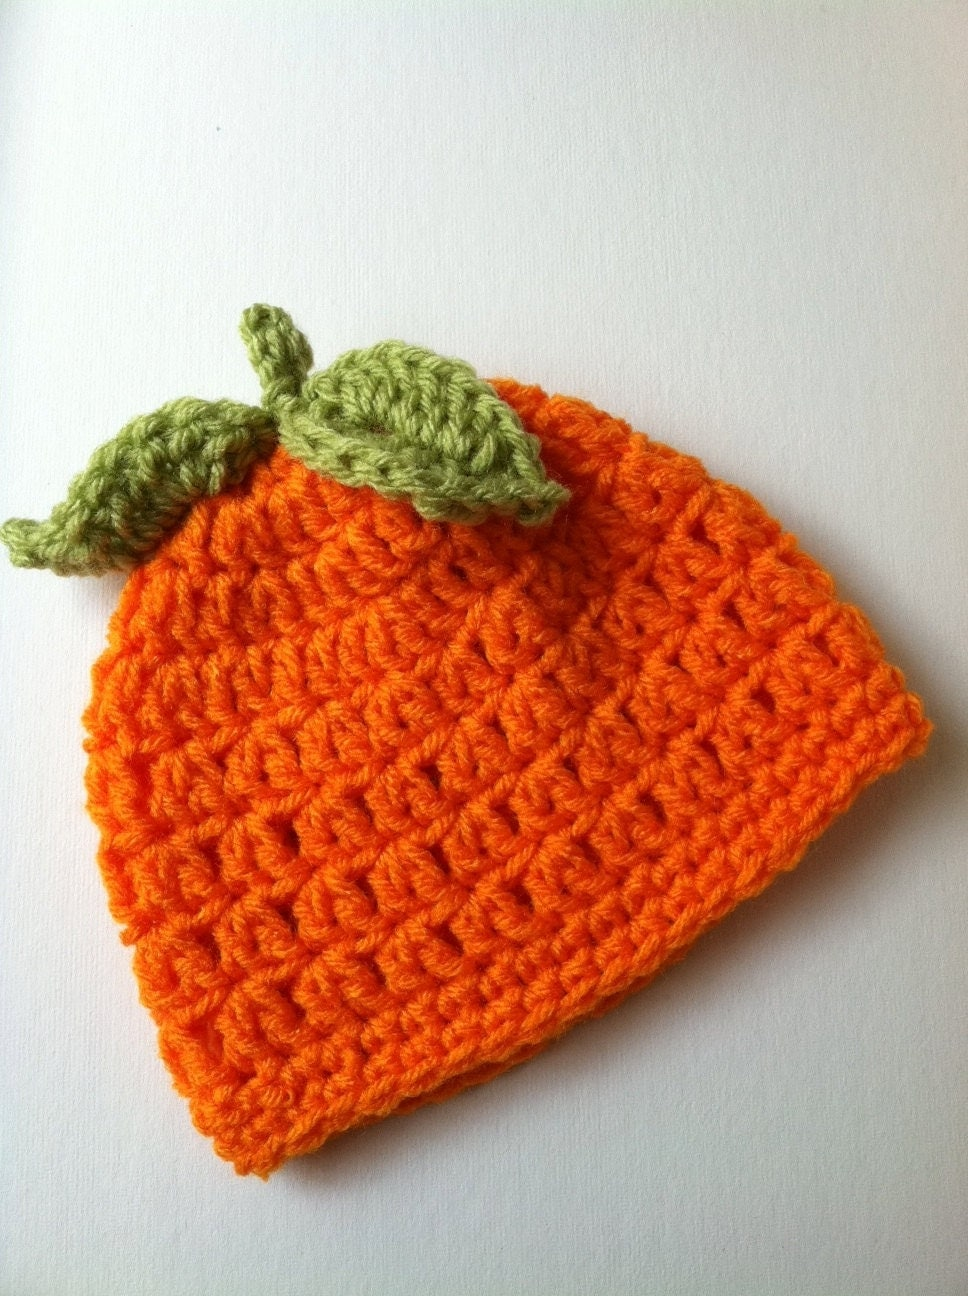 Crochet Halloween Baby Hat Pattern : Halloween Crochet Baby Hat Orange Pumpkin by ...